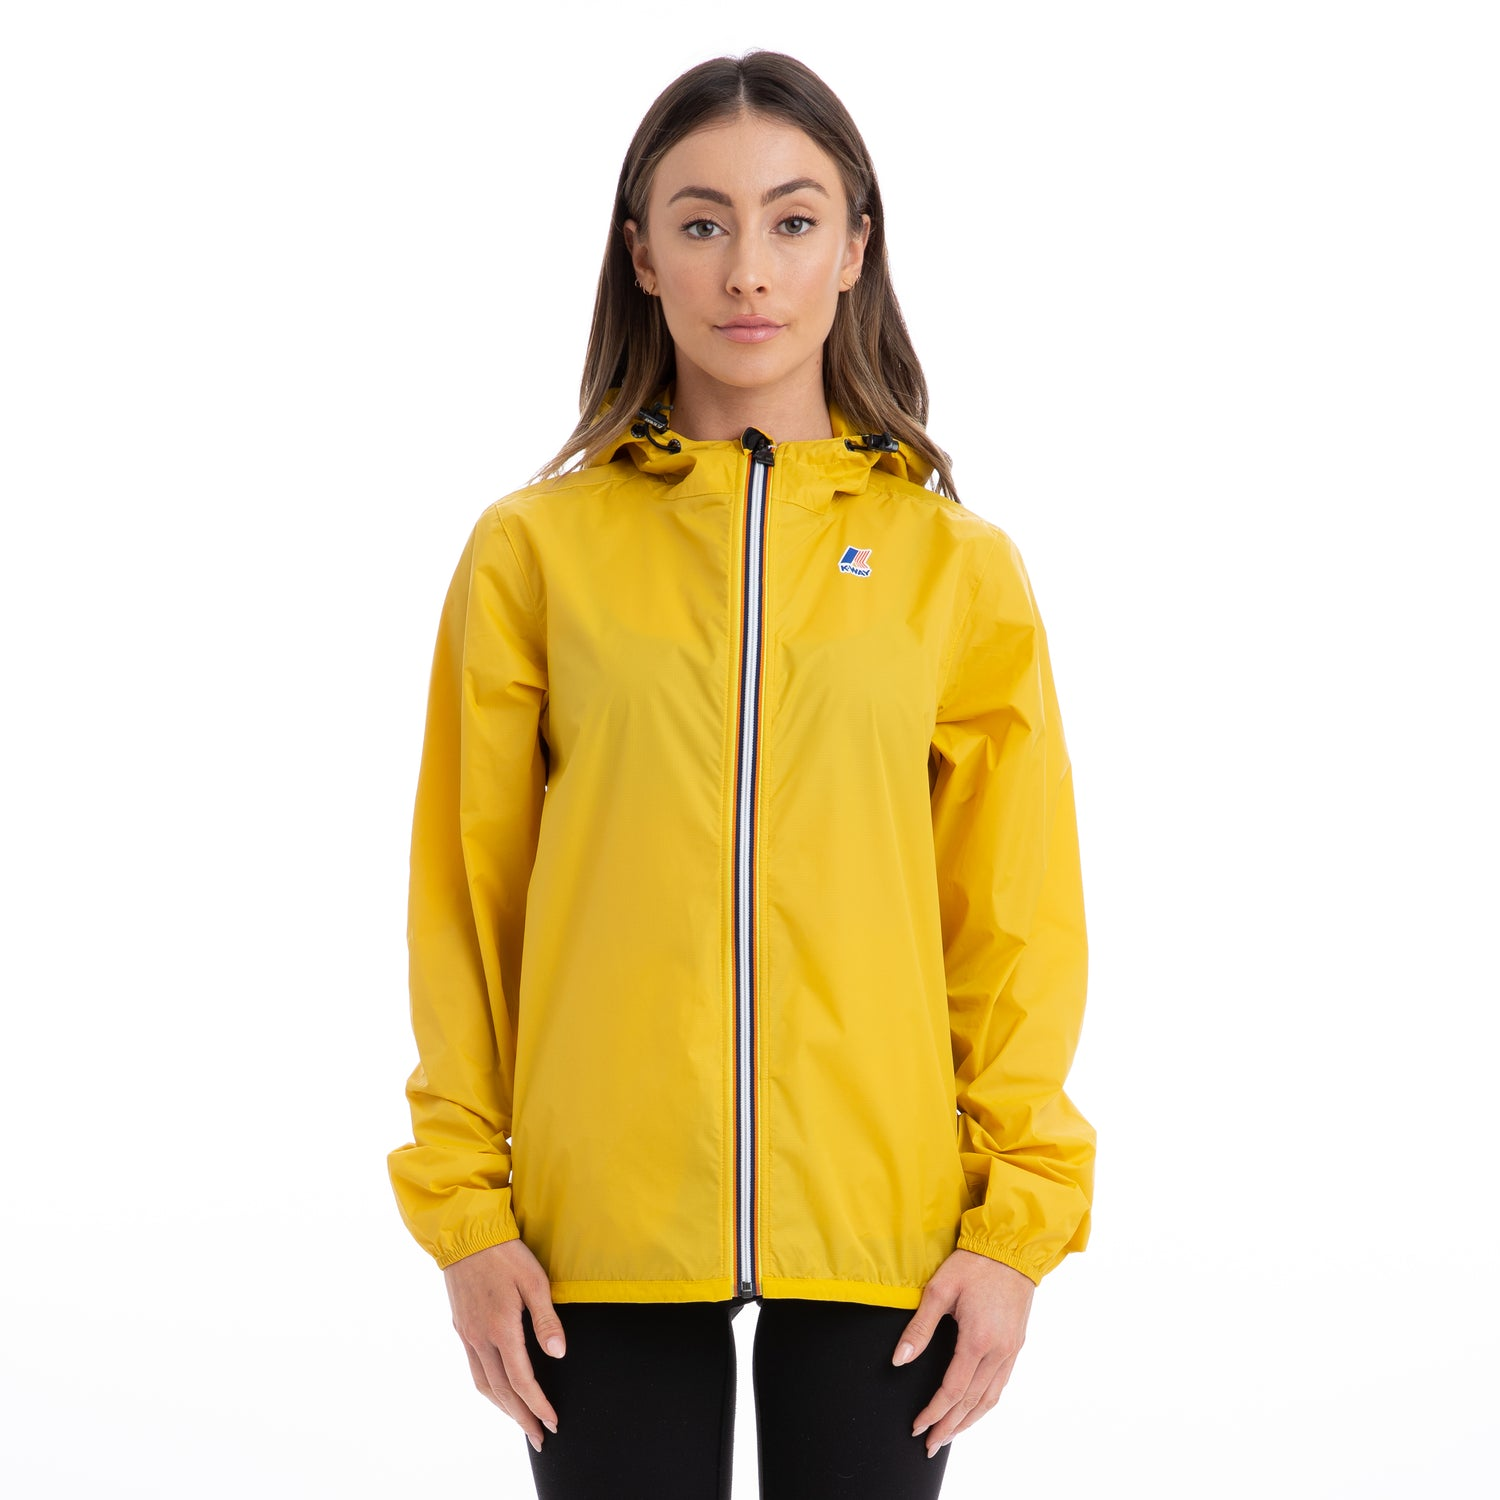 K-Way Women's Le Vrai 3.0 Claude Full Zip Jacket Yellow Mustard